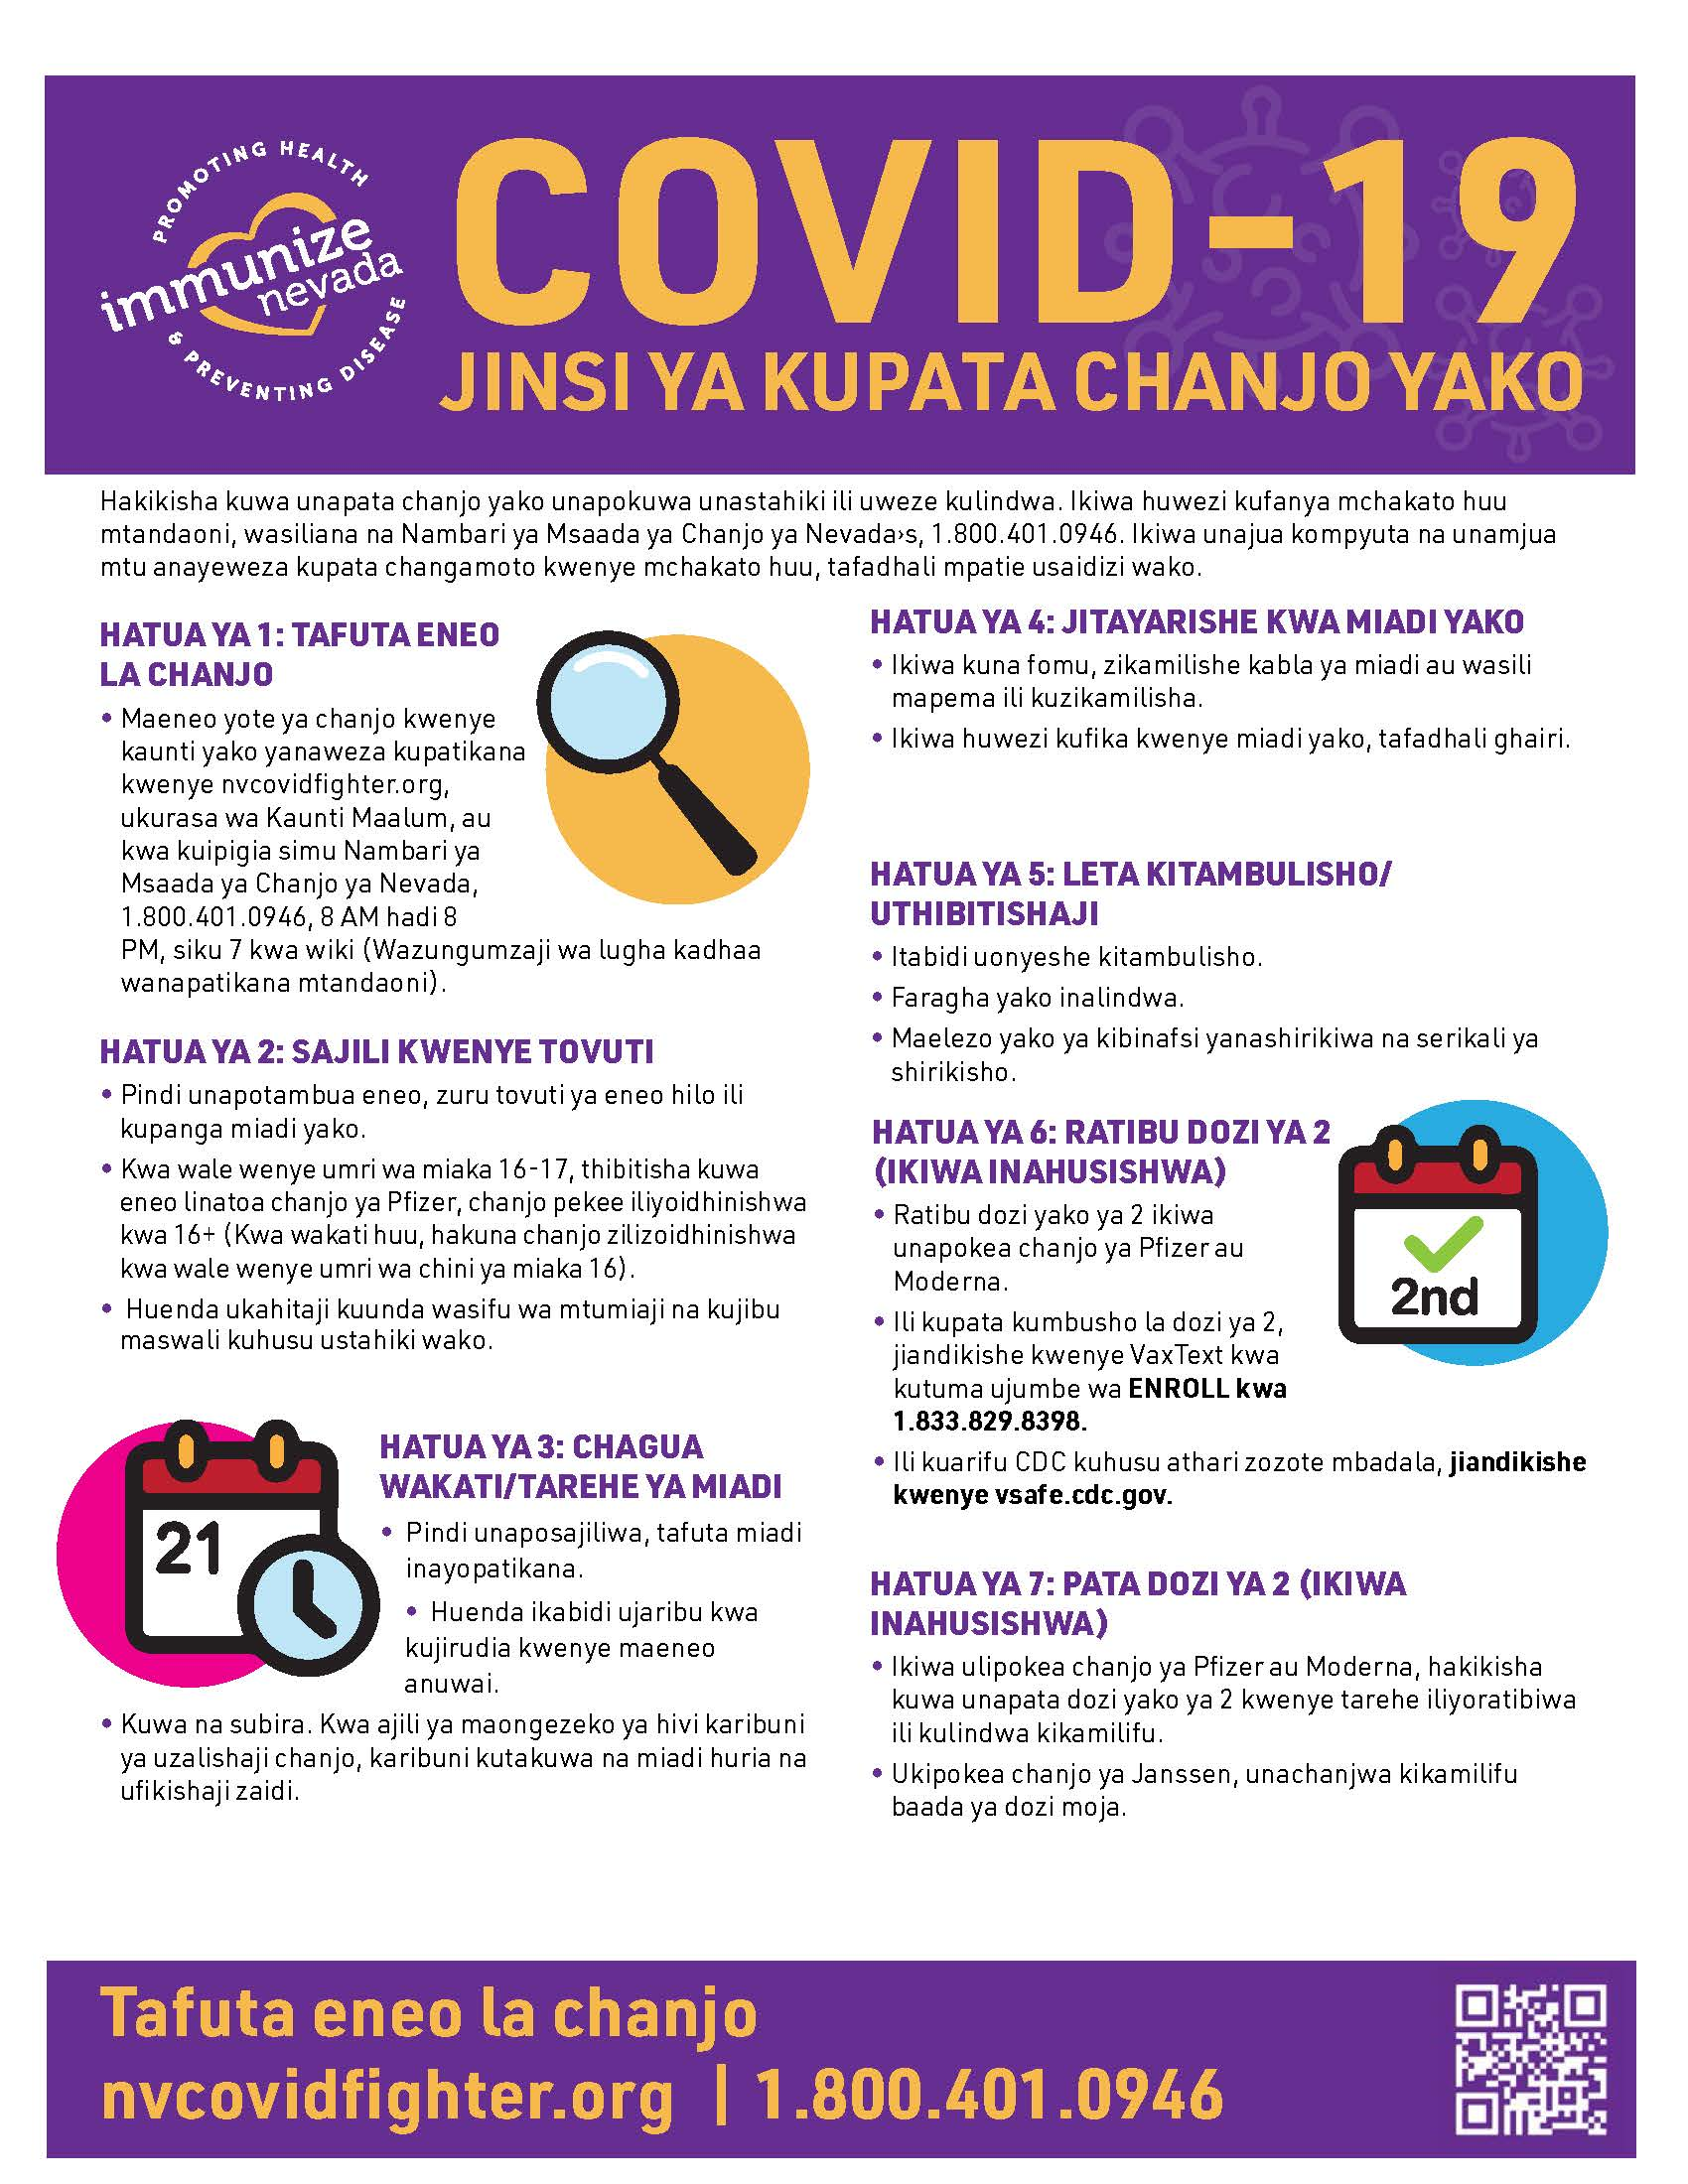 COVID-19 Vaccine Appointment Steps Flyer Swahili_v1